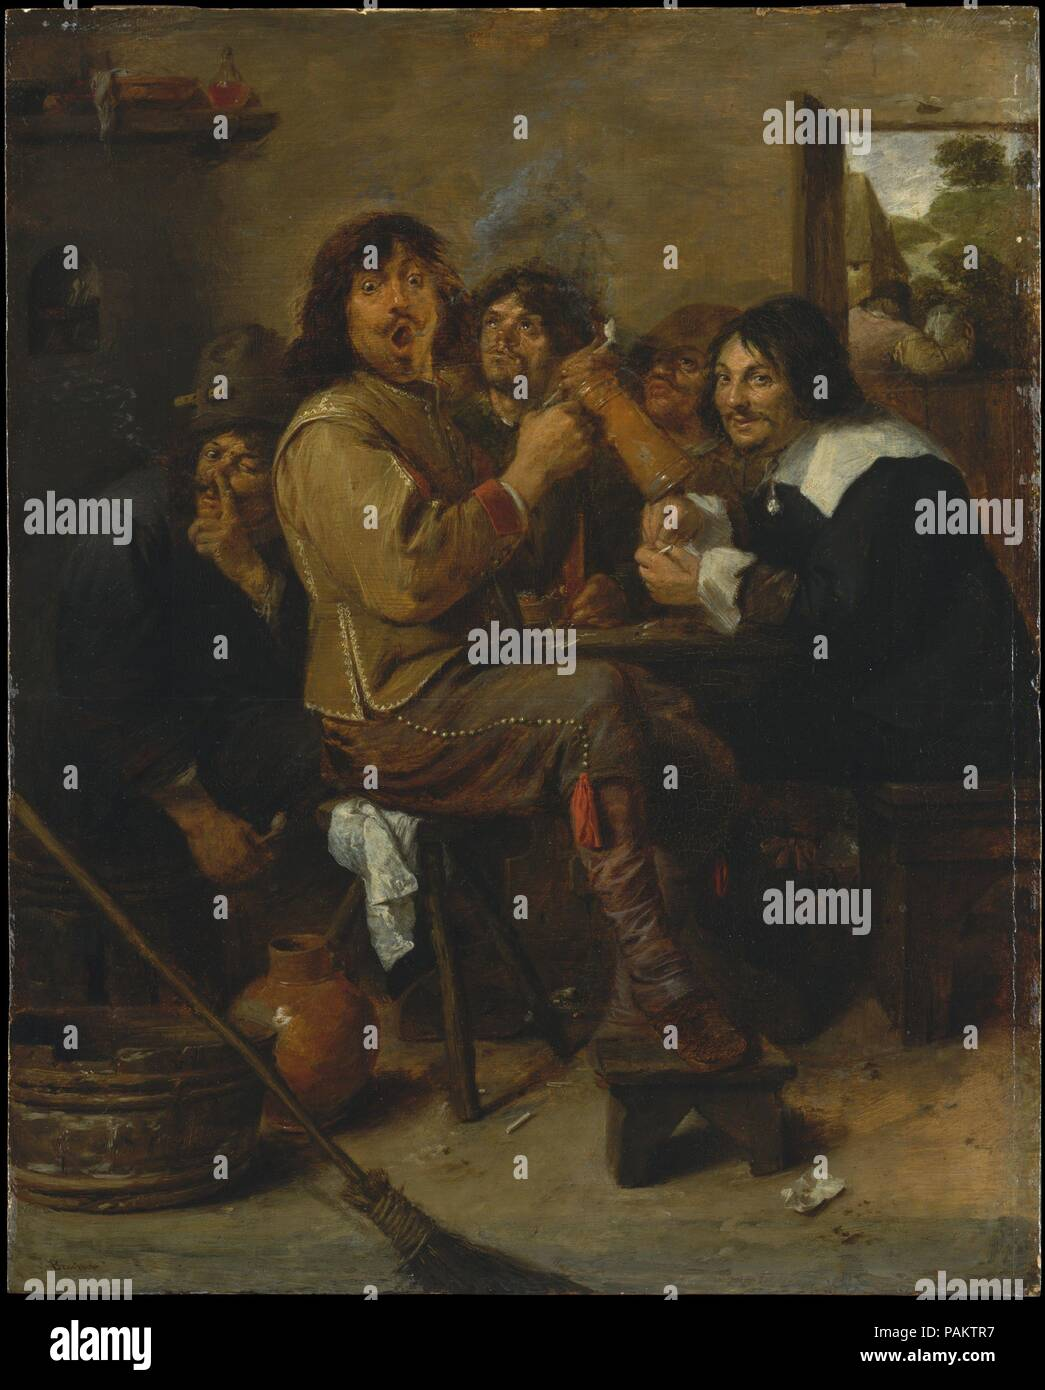 The Smokers. Artist: Adriaen Brouwer (Flemish, Oudenaarde 1605/6-1638 Antwerp). Dimensions: 18 1/4 x 14 1/2 in. (46.4 x 36.8 cm). Date: ca. 1636.  The Fleming Brouwer worked in Haarlem and Amsterdam before joining the Antwerp painters' guild in 1621-32. HIs sheer talent and flair for human comedy earned the short-lived artist the esteem of Rubens and Rembrandt. In this famous picture, Brouwer himself (center foreground) plays one of his usual tavern habitués, with the still-life painter Jan de Heem (right) and more derelict companions serving as a chorus of smokers. Ephemeral effects, ranging  - Stock Image